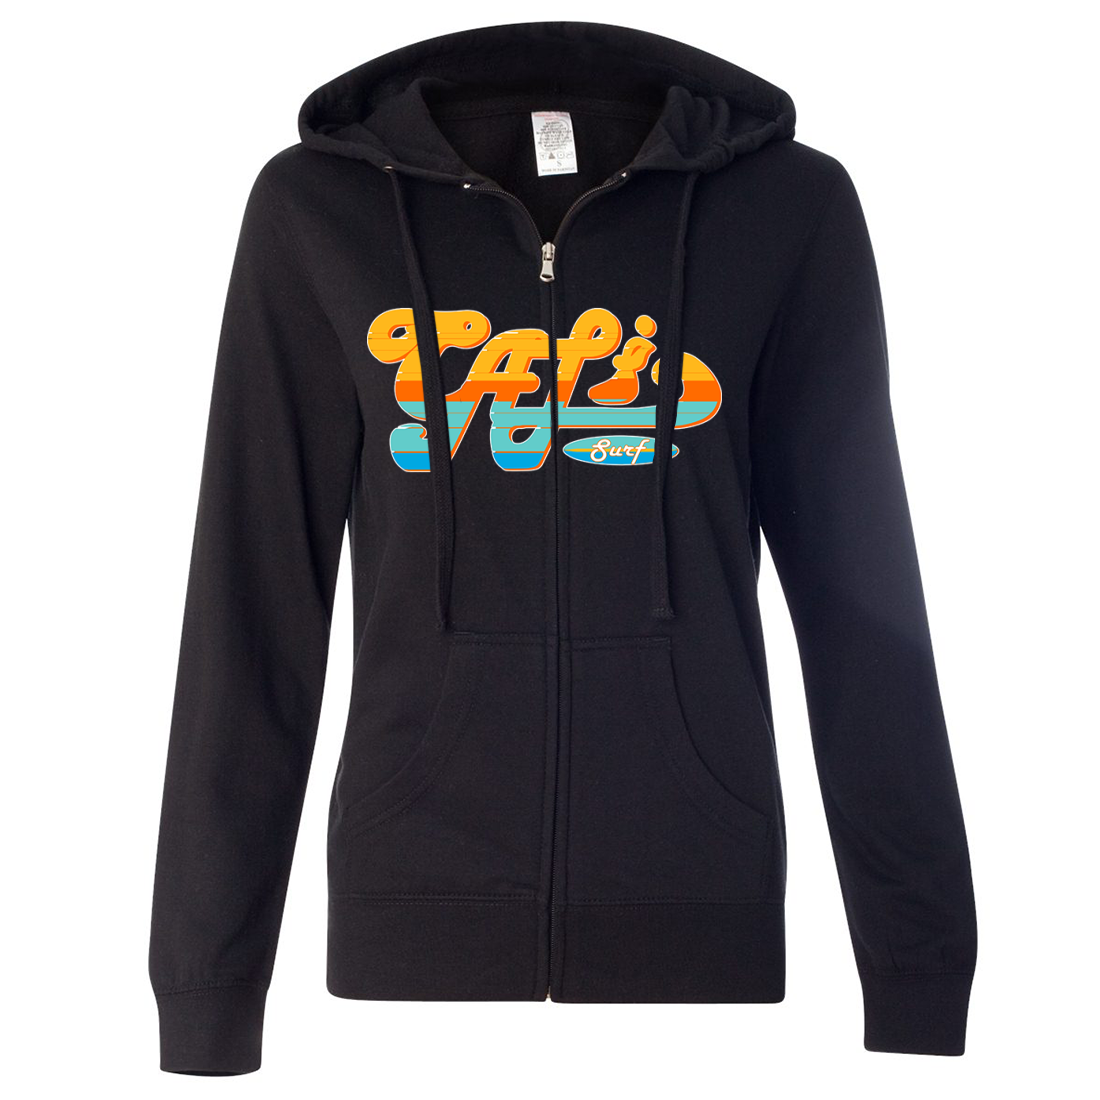 Cali Surf Ladies Lightweight Fitted Zip-Up Hoodie